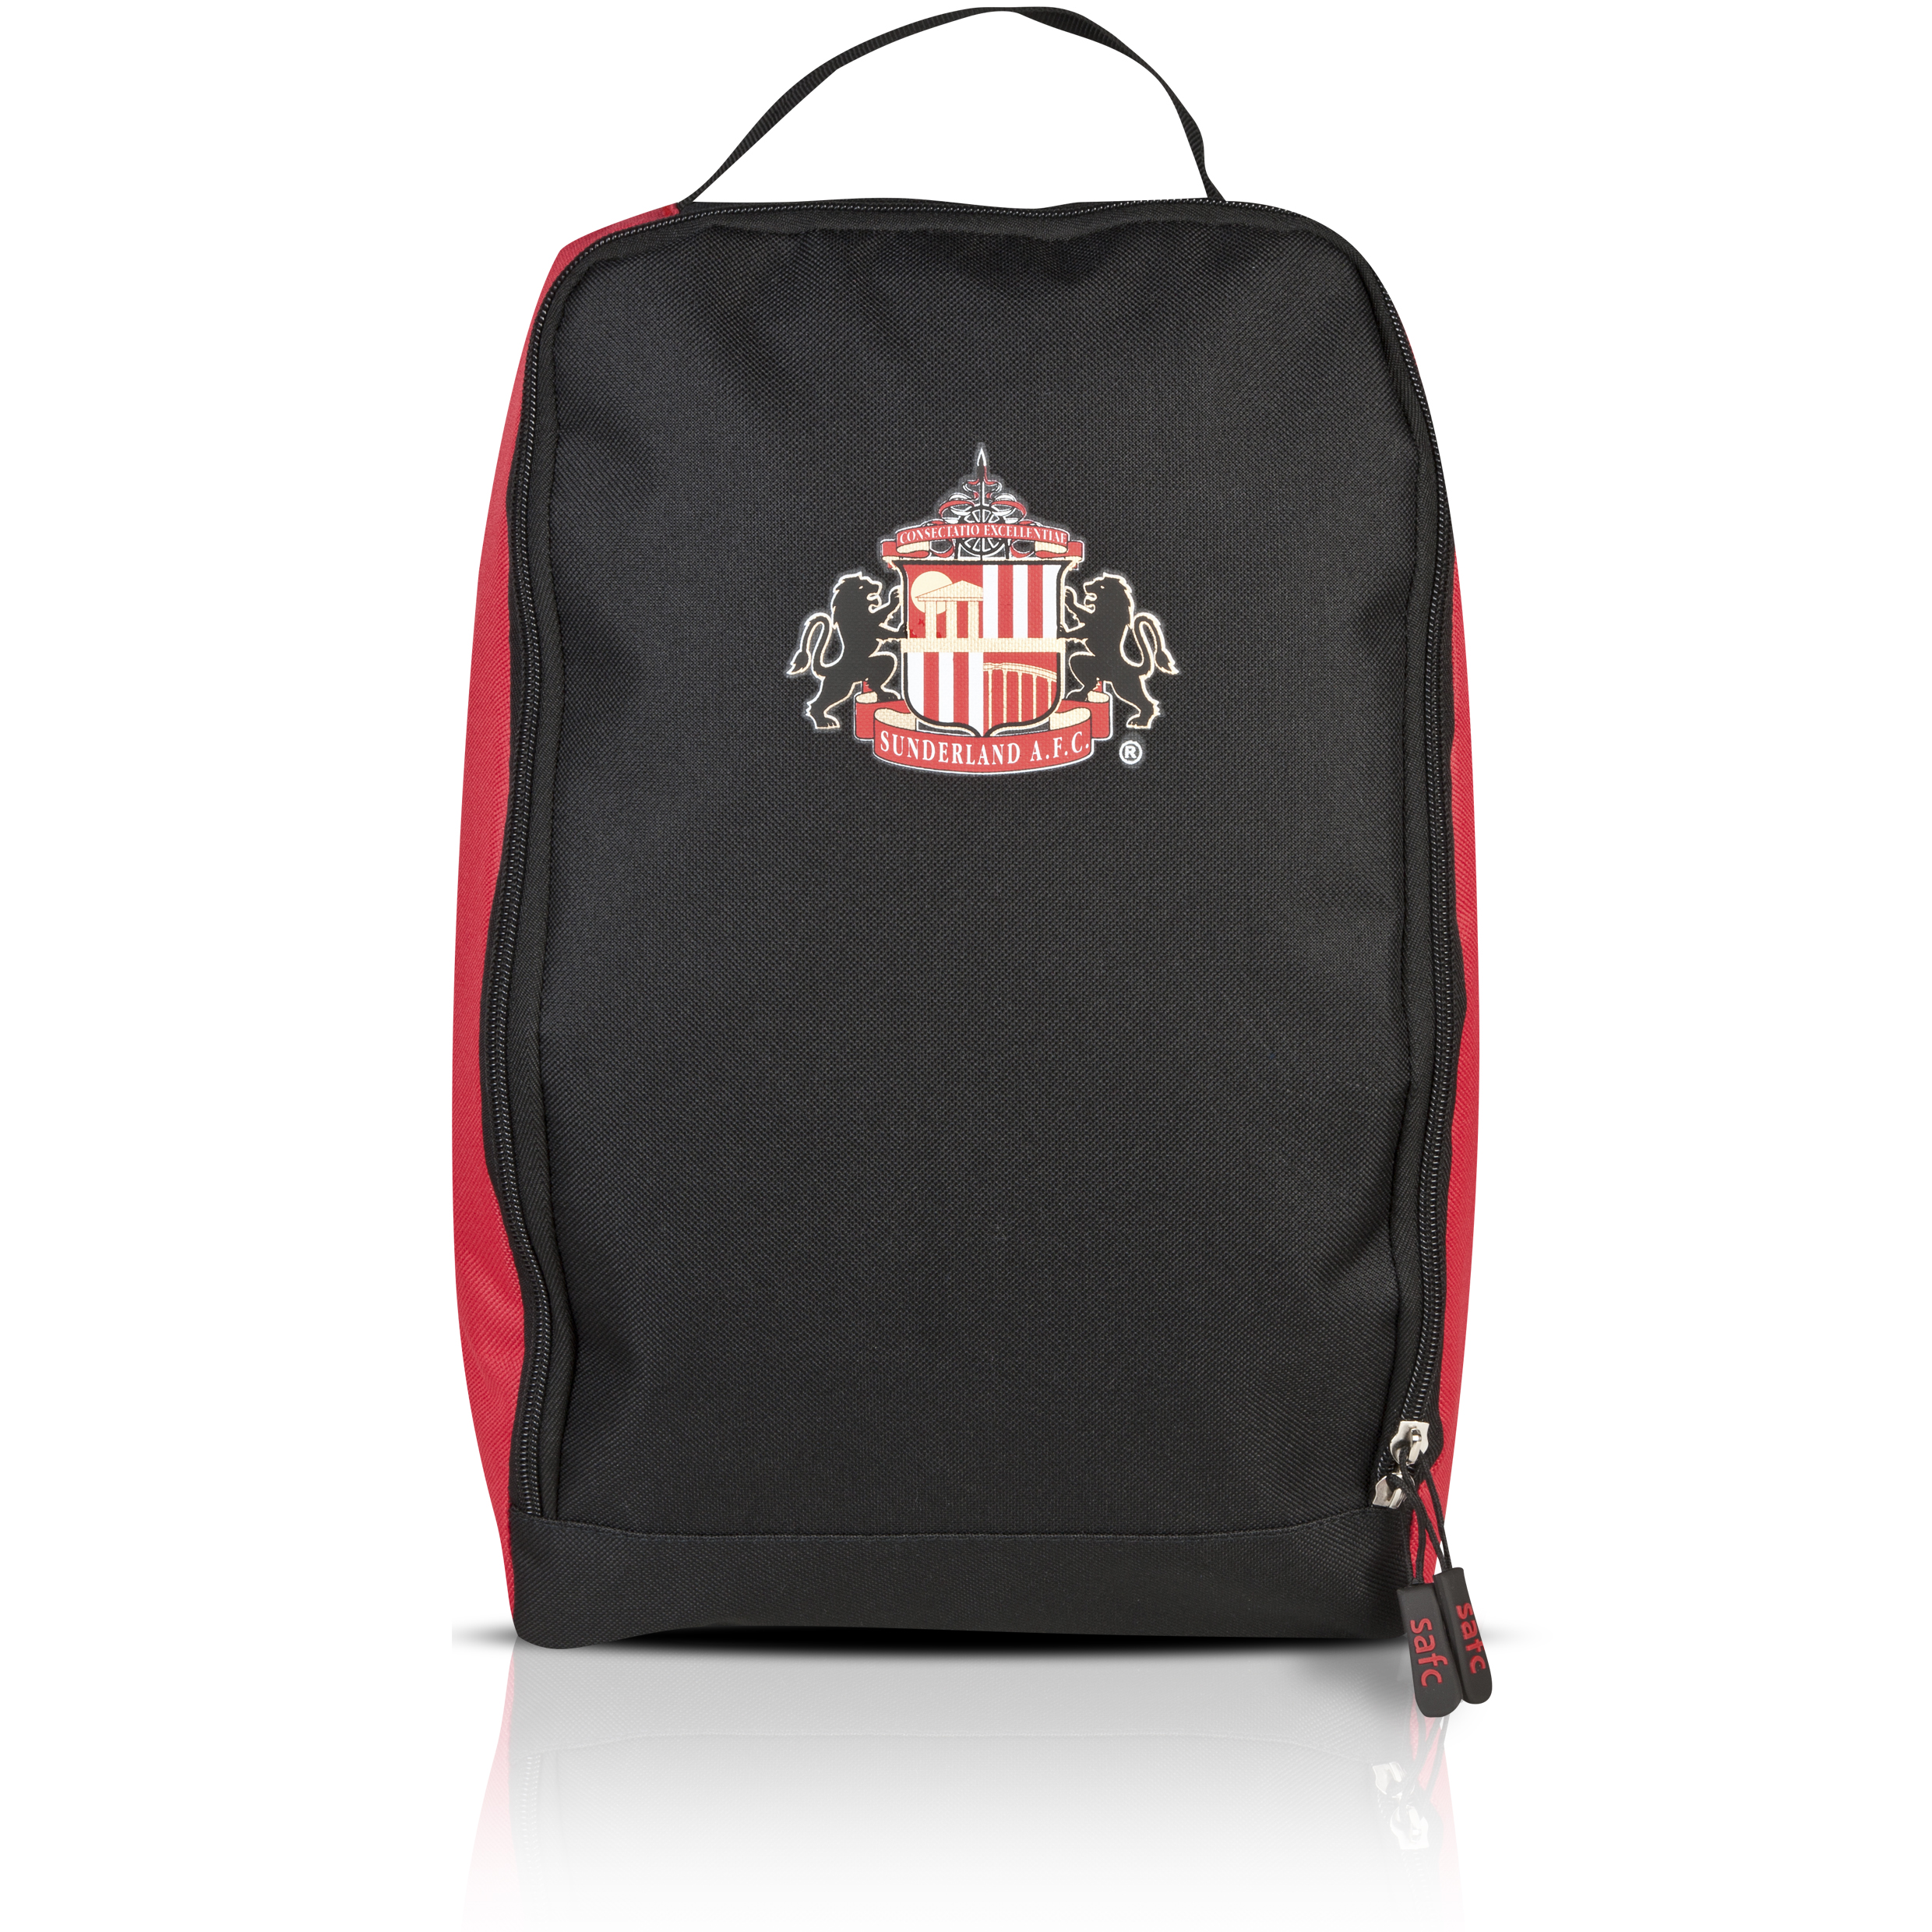 Sunderland Core Shoebag - Black/Red